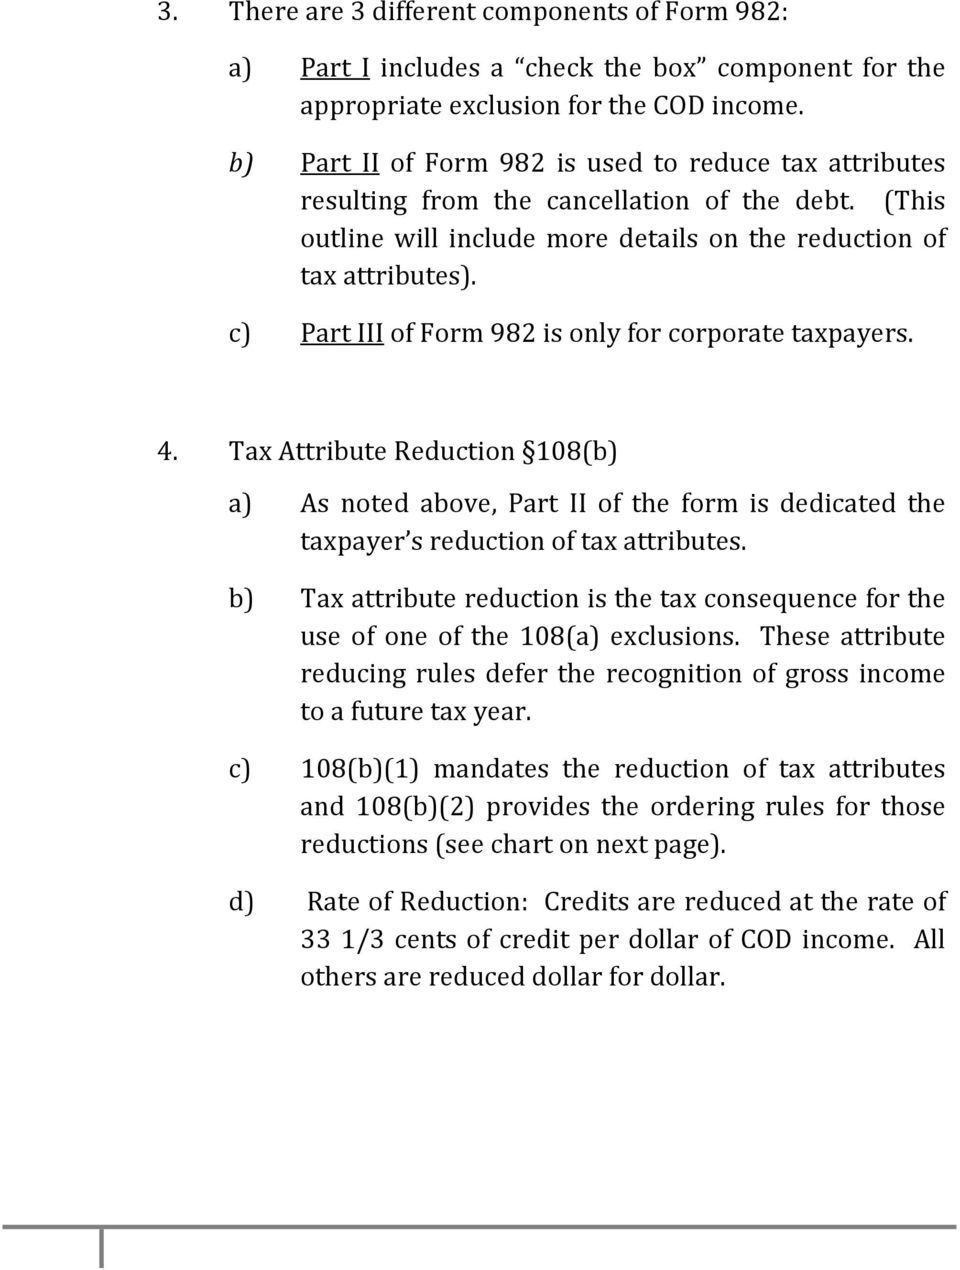 c) Part III of Form 982 is only for corporate taxpayers. 4. Tax Attribute Reduction 108(b) a) As noted above, Part II of the form is dedicated the taxpayer s reduction of tax attributes.